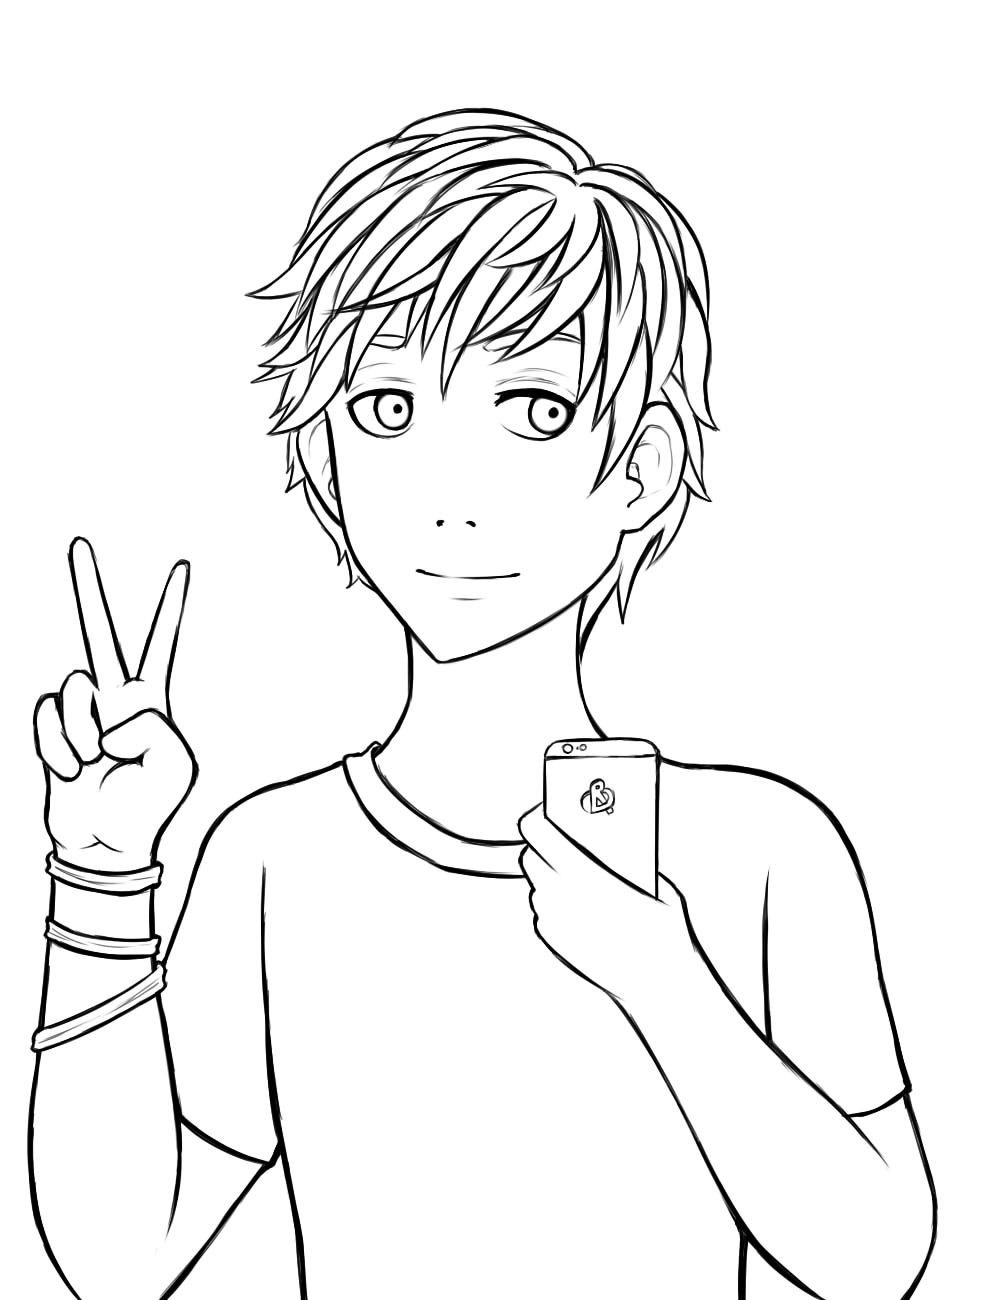 Animeboy Coloring Pages